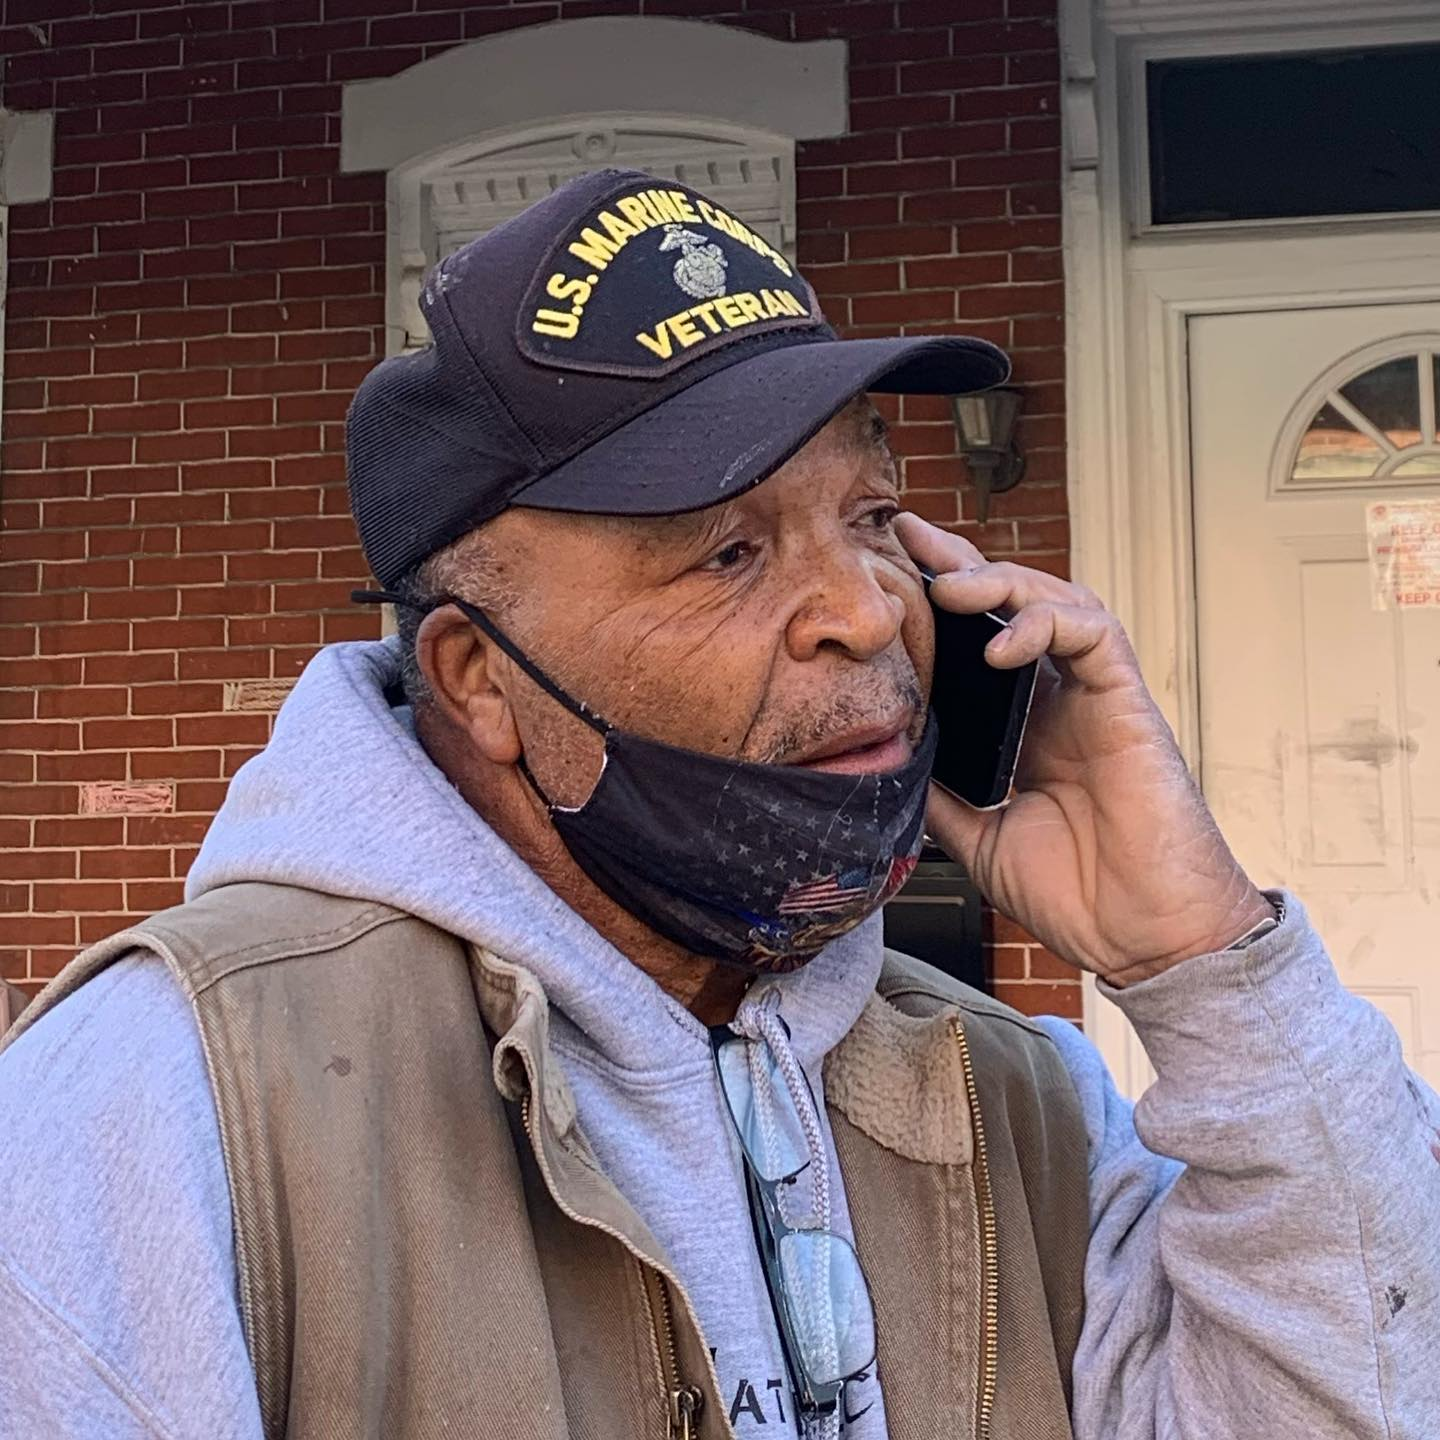 70-Year-Old Veteran with Lung Issues Enters Burning Home to Rescue Neighbor from Fire